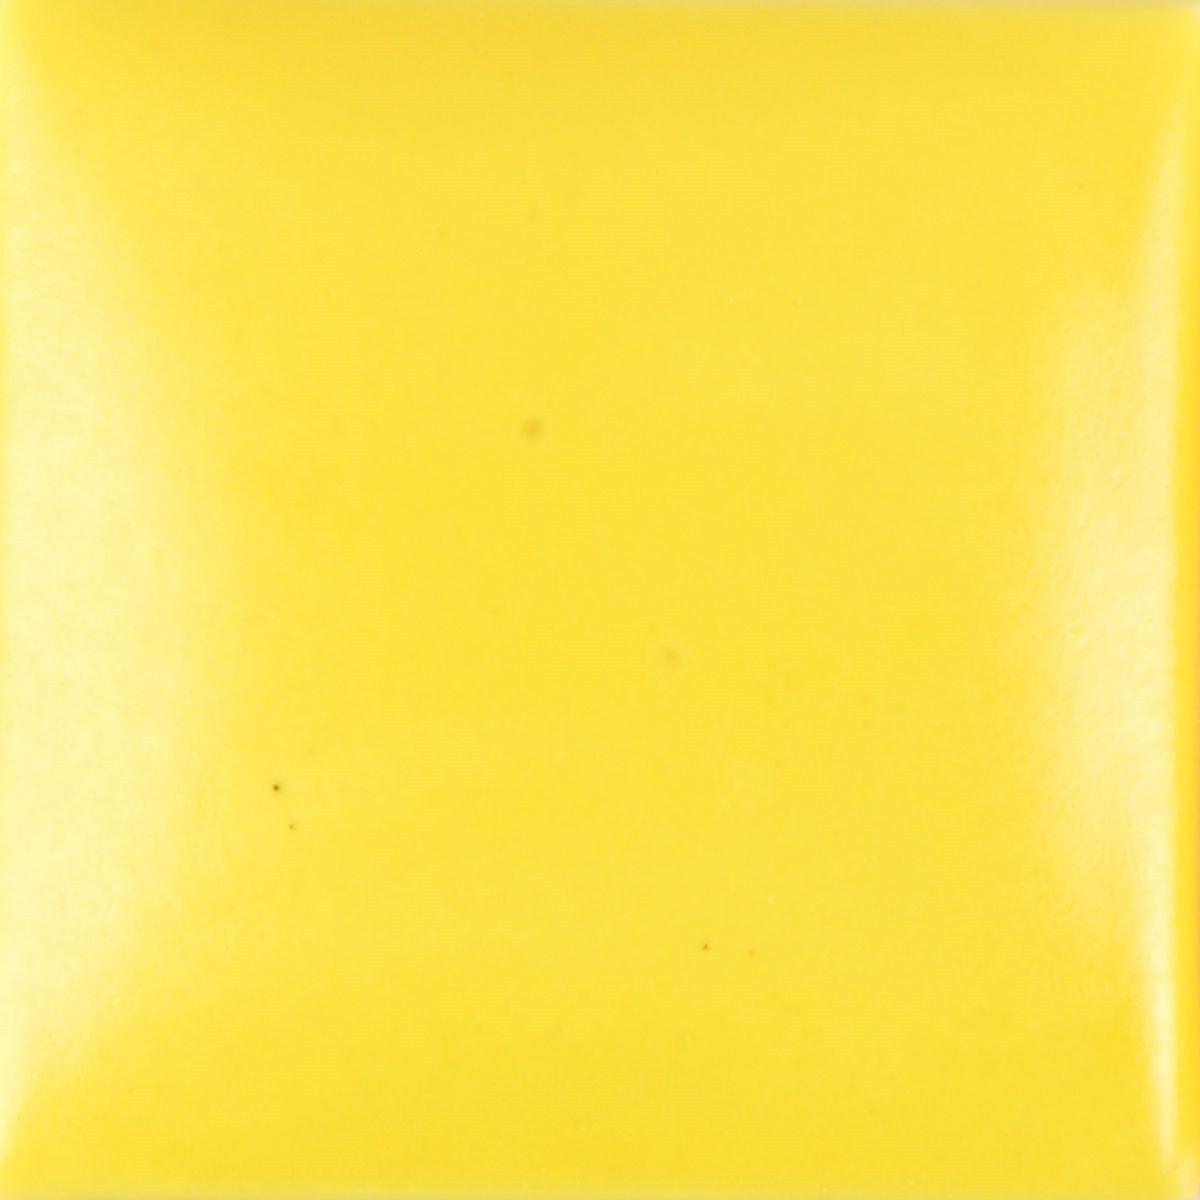 Duncan SN374 Neon Yellow Satin Glaze